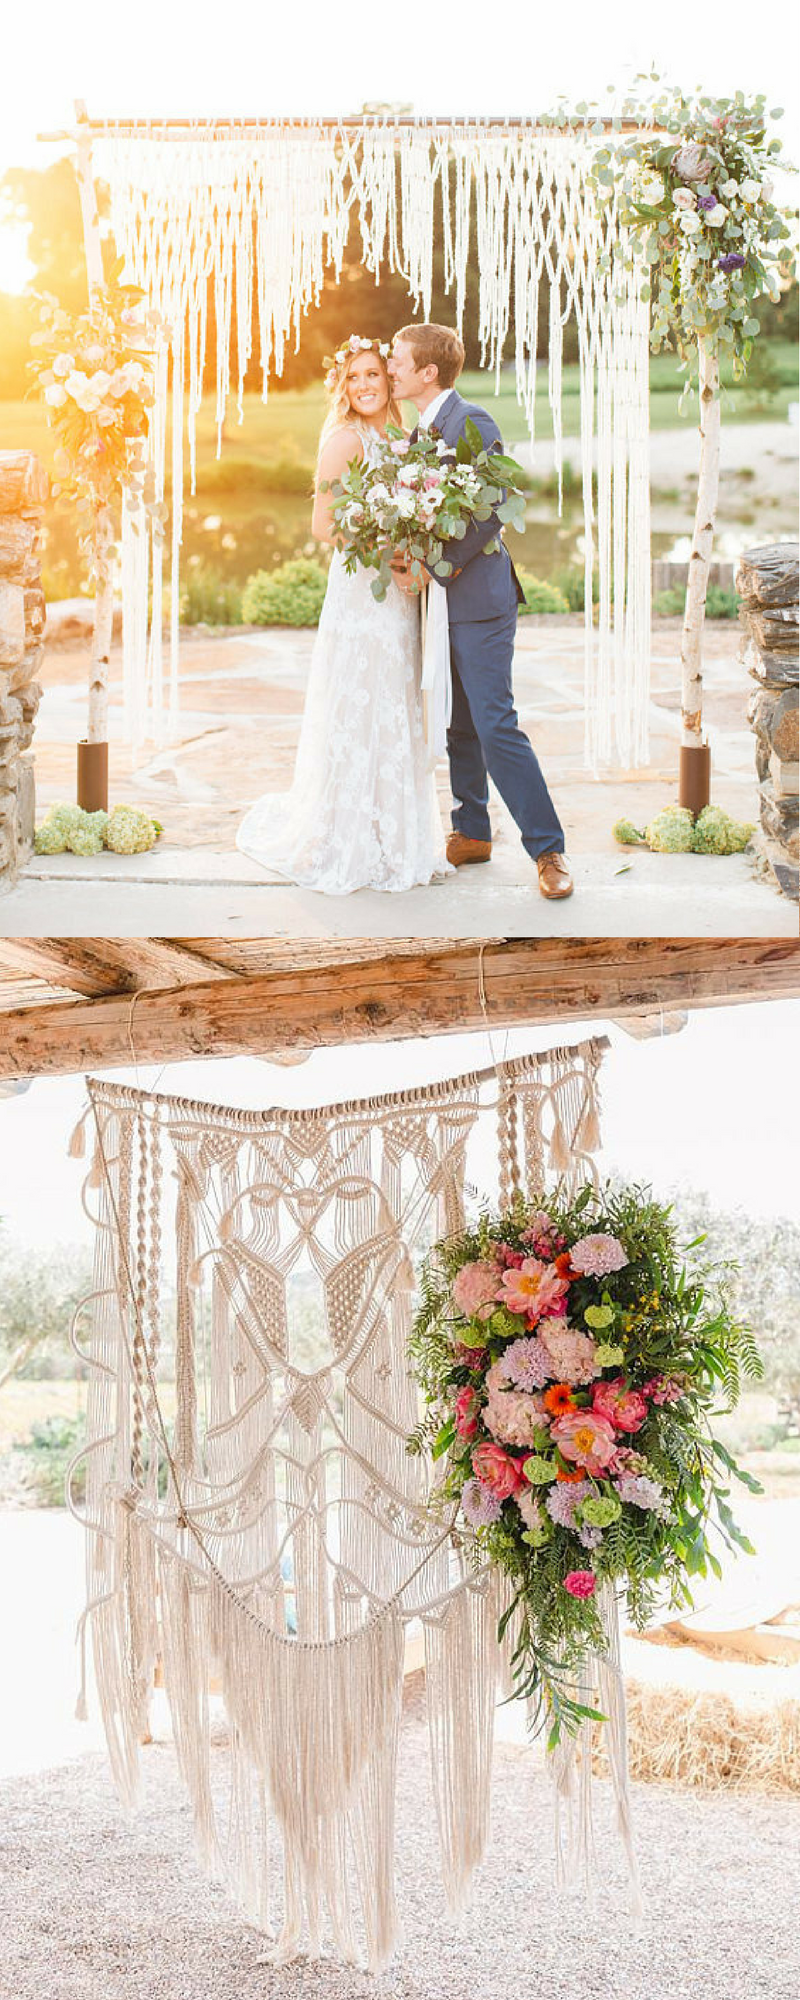 Unique and breathtaking wedding backdrop ideas choosing the perfect